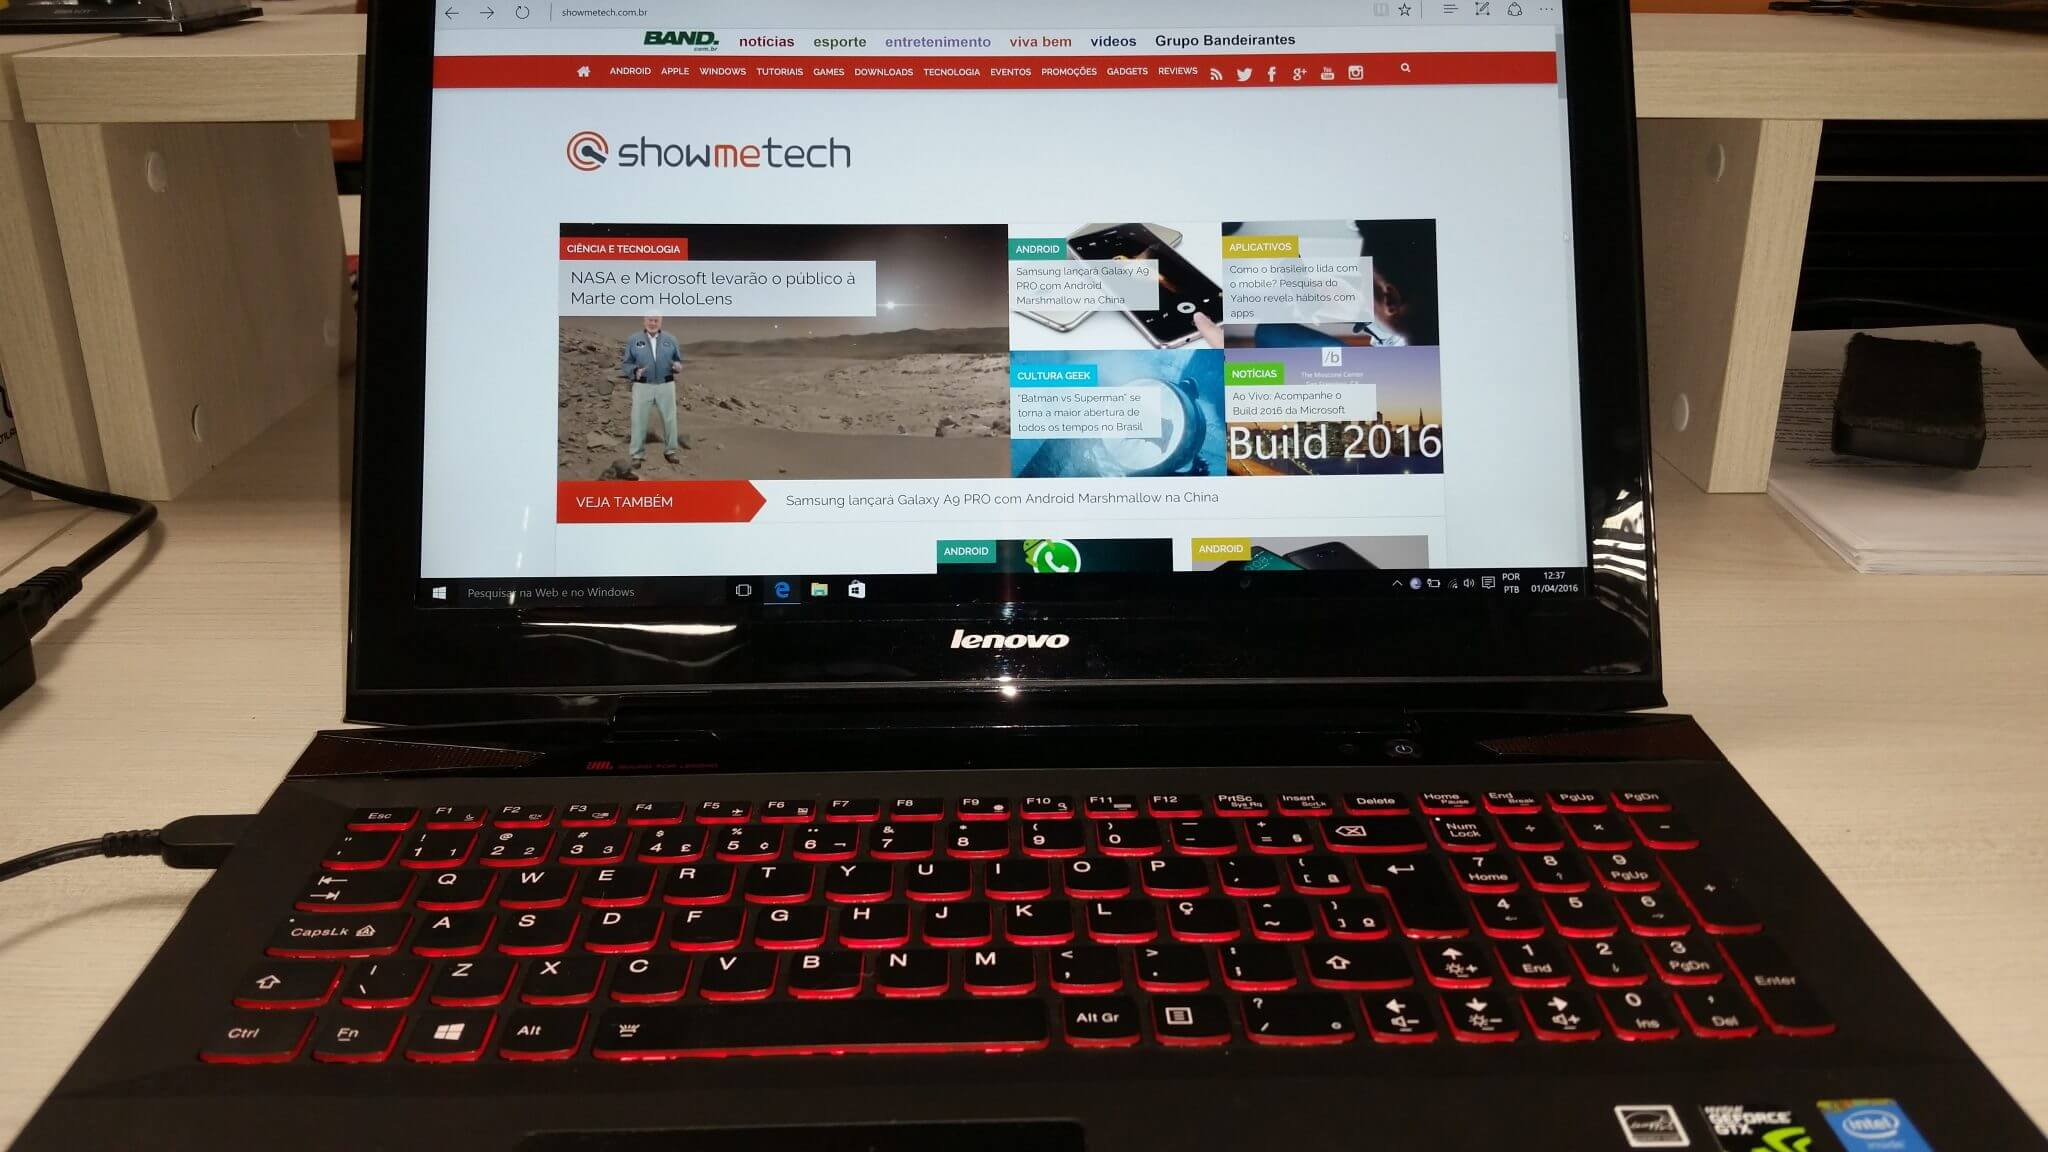 20160401 123650 - Review: Lenovo Y50 - Um notebook gamer de peso